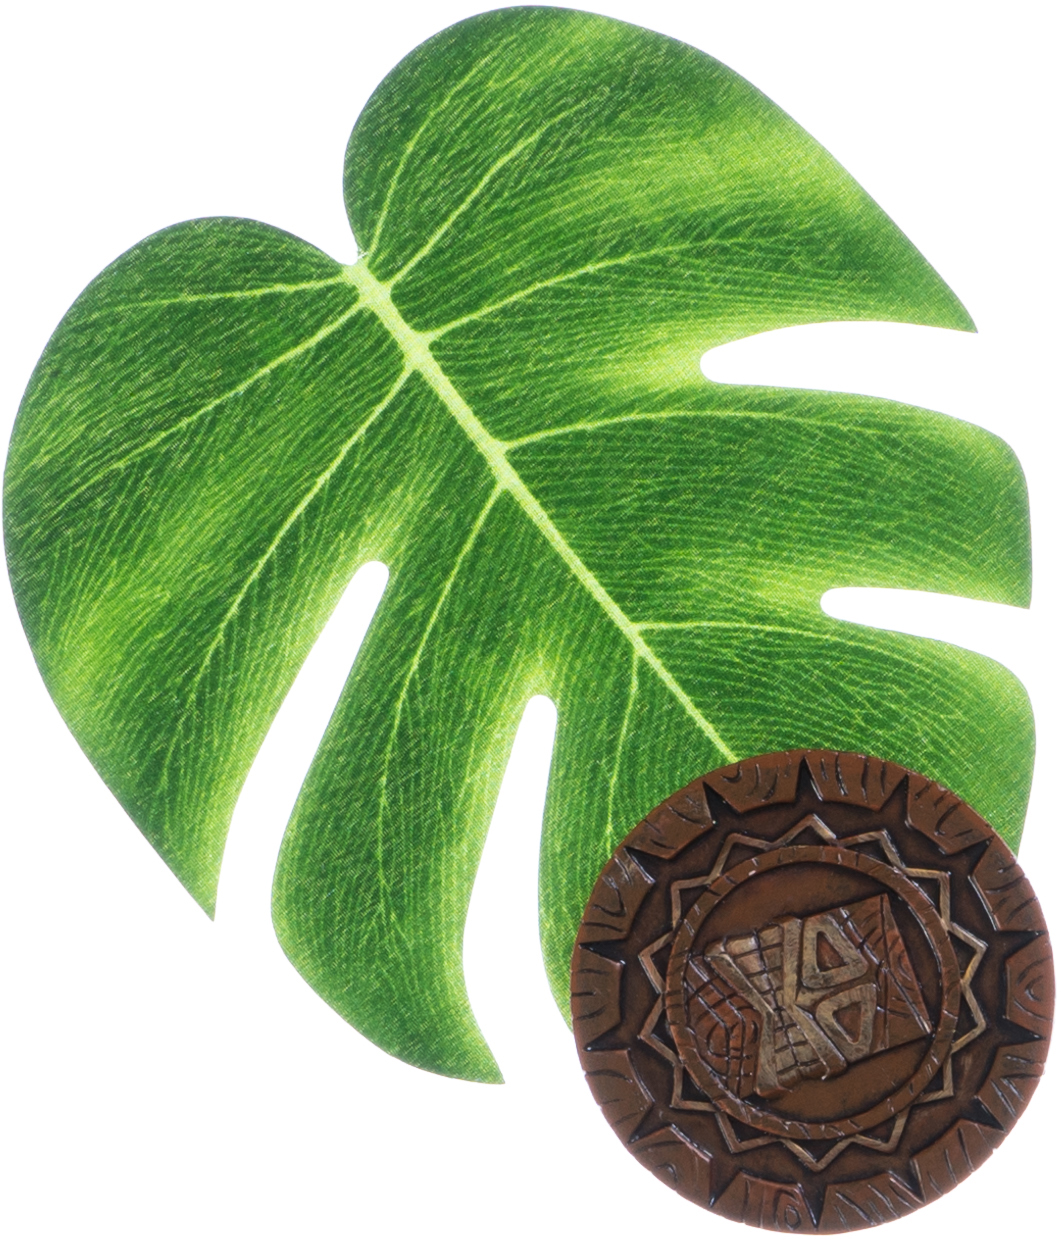 Tropical leaf and coaster